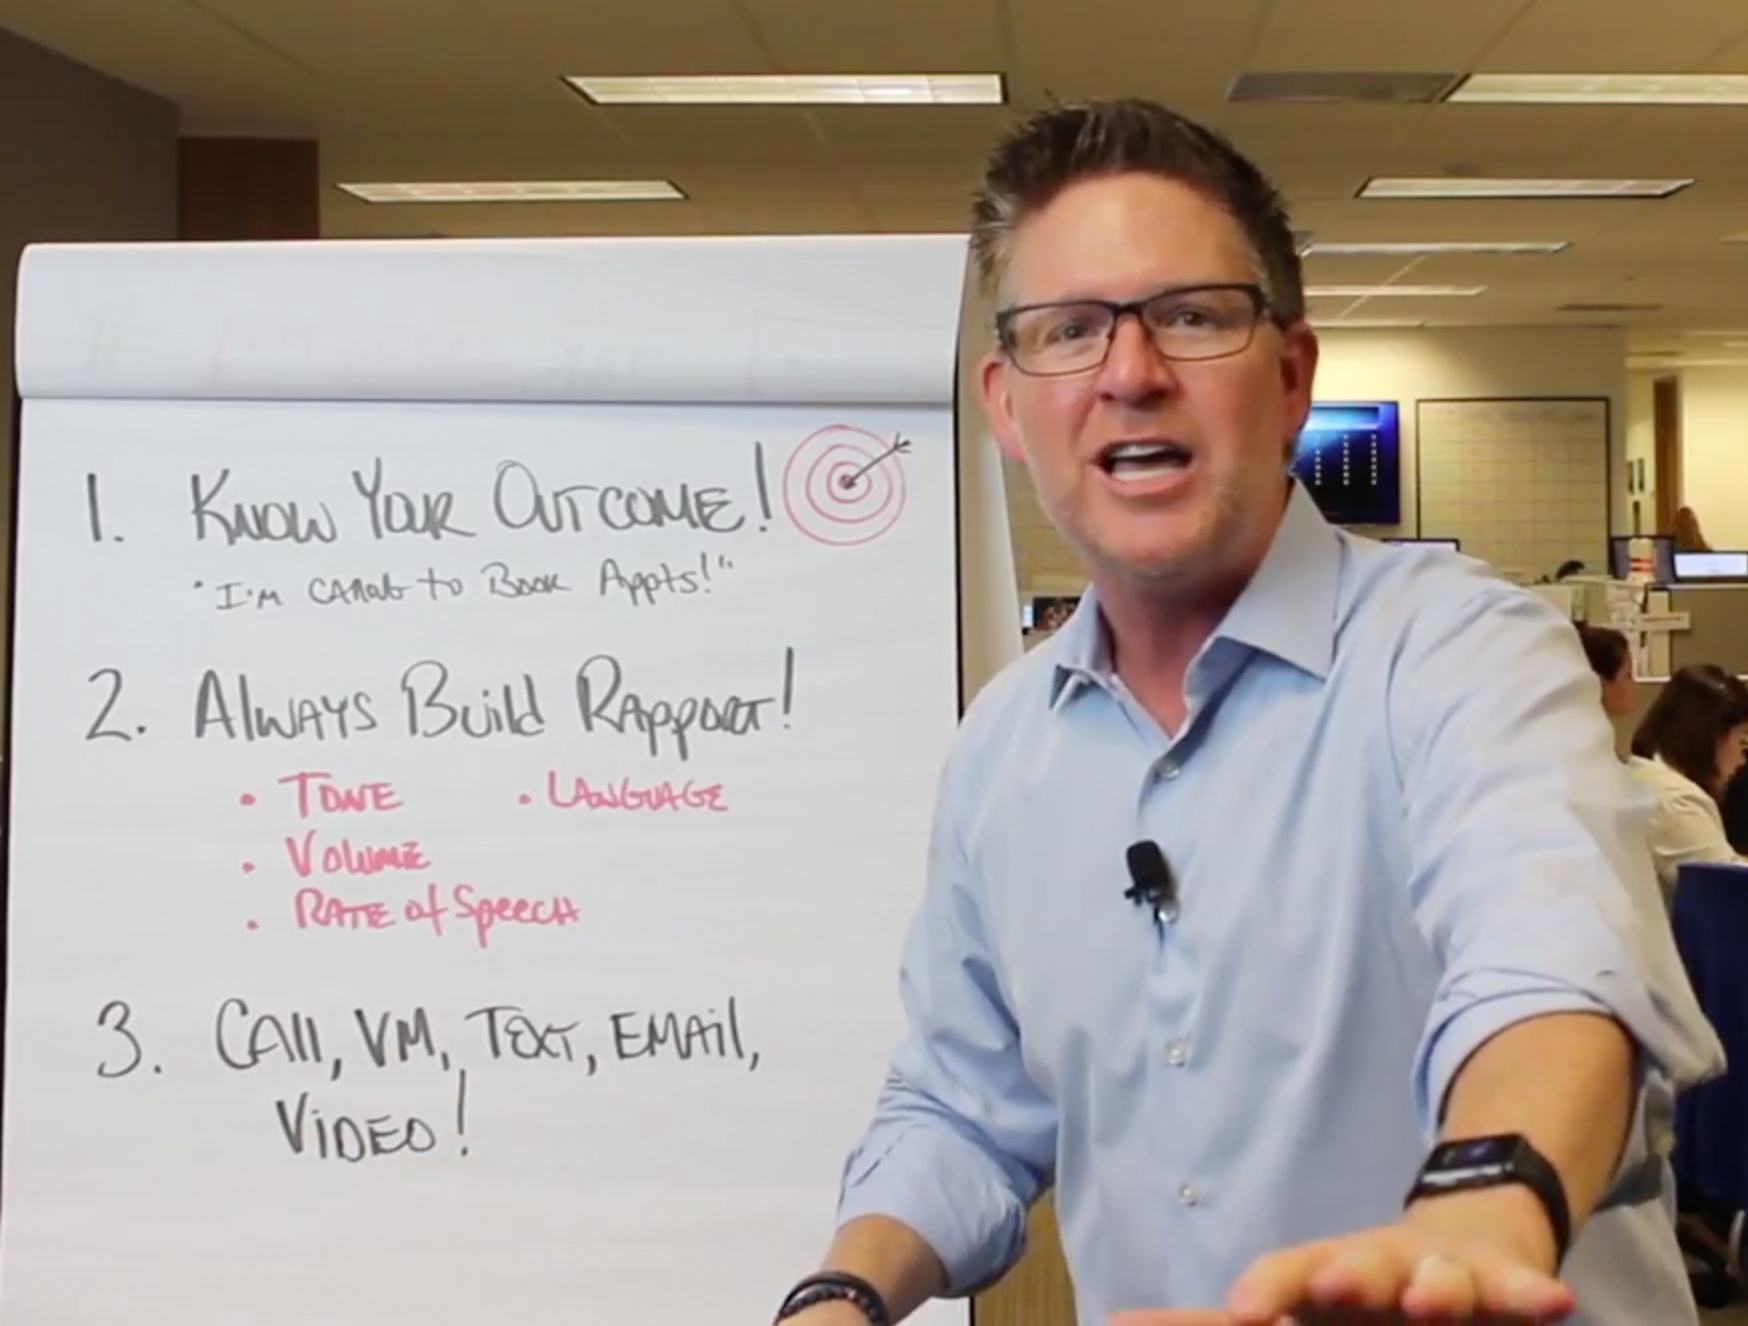 7 Steps to Generate More Real Estate Business: Tom Ferry Cliff Notes